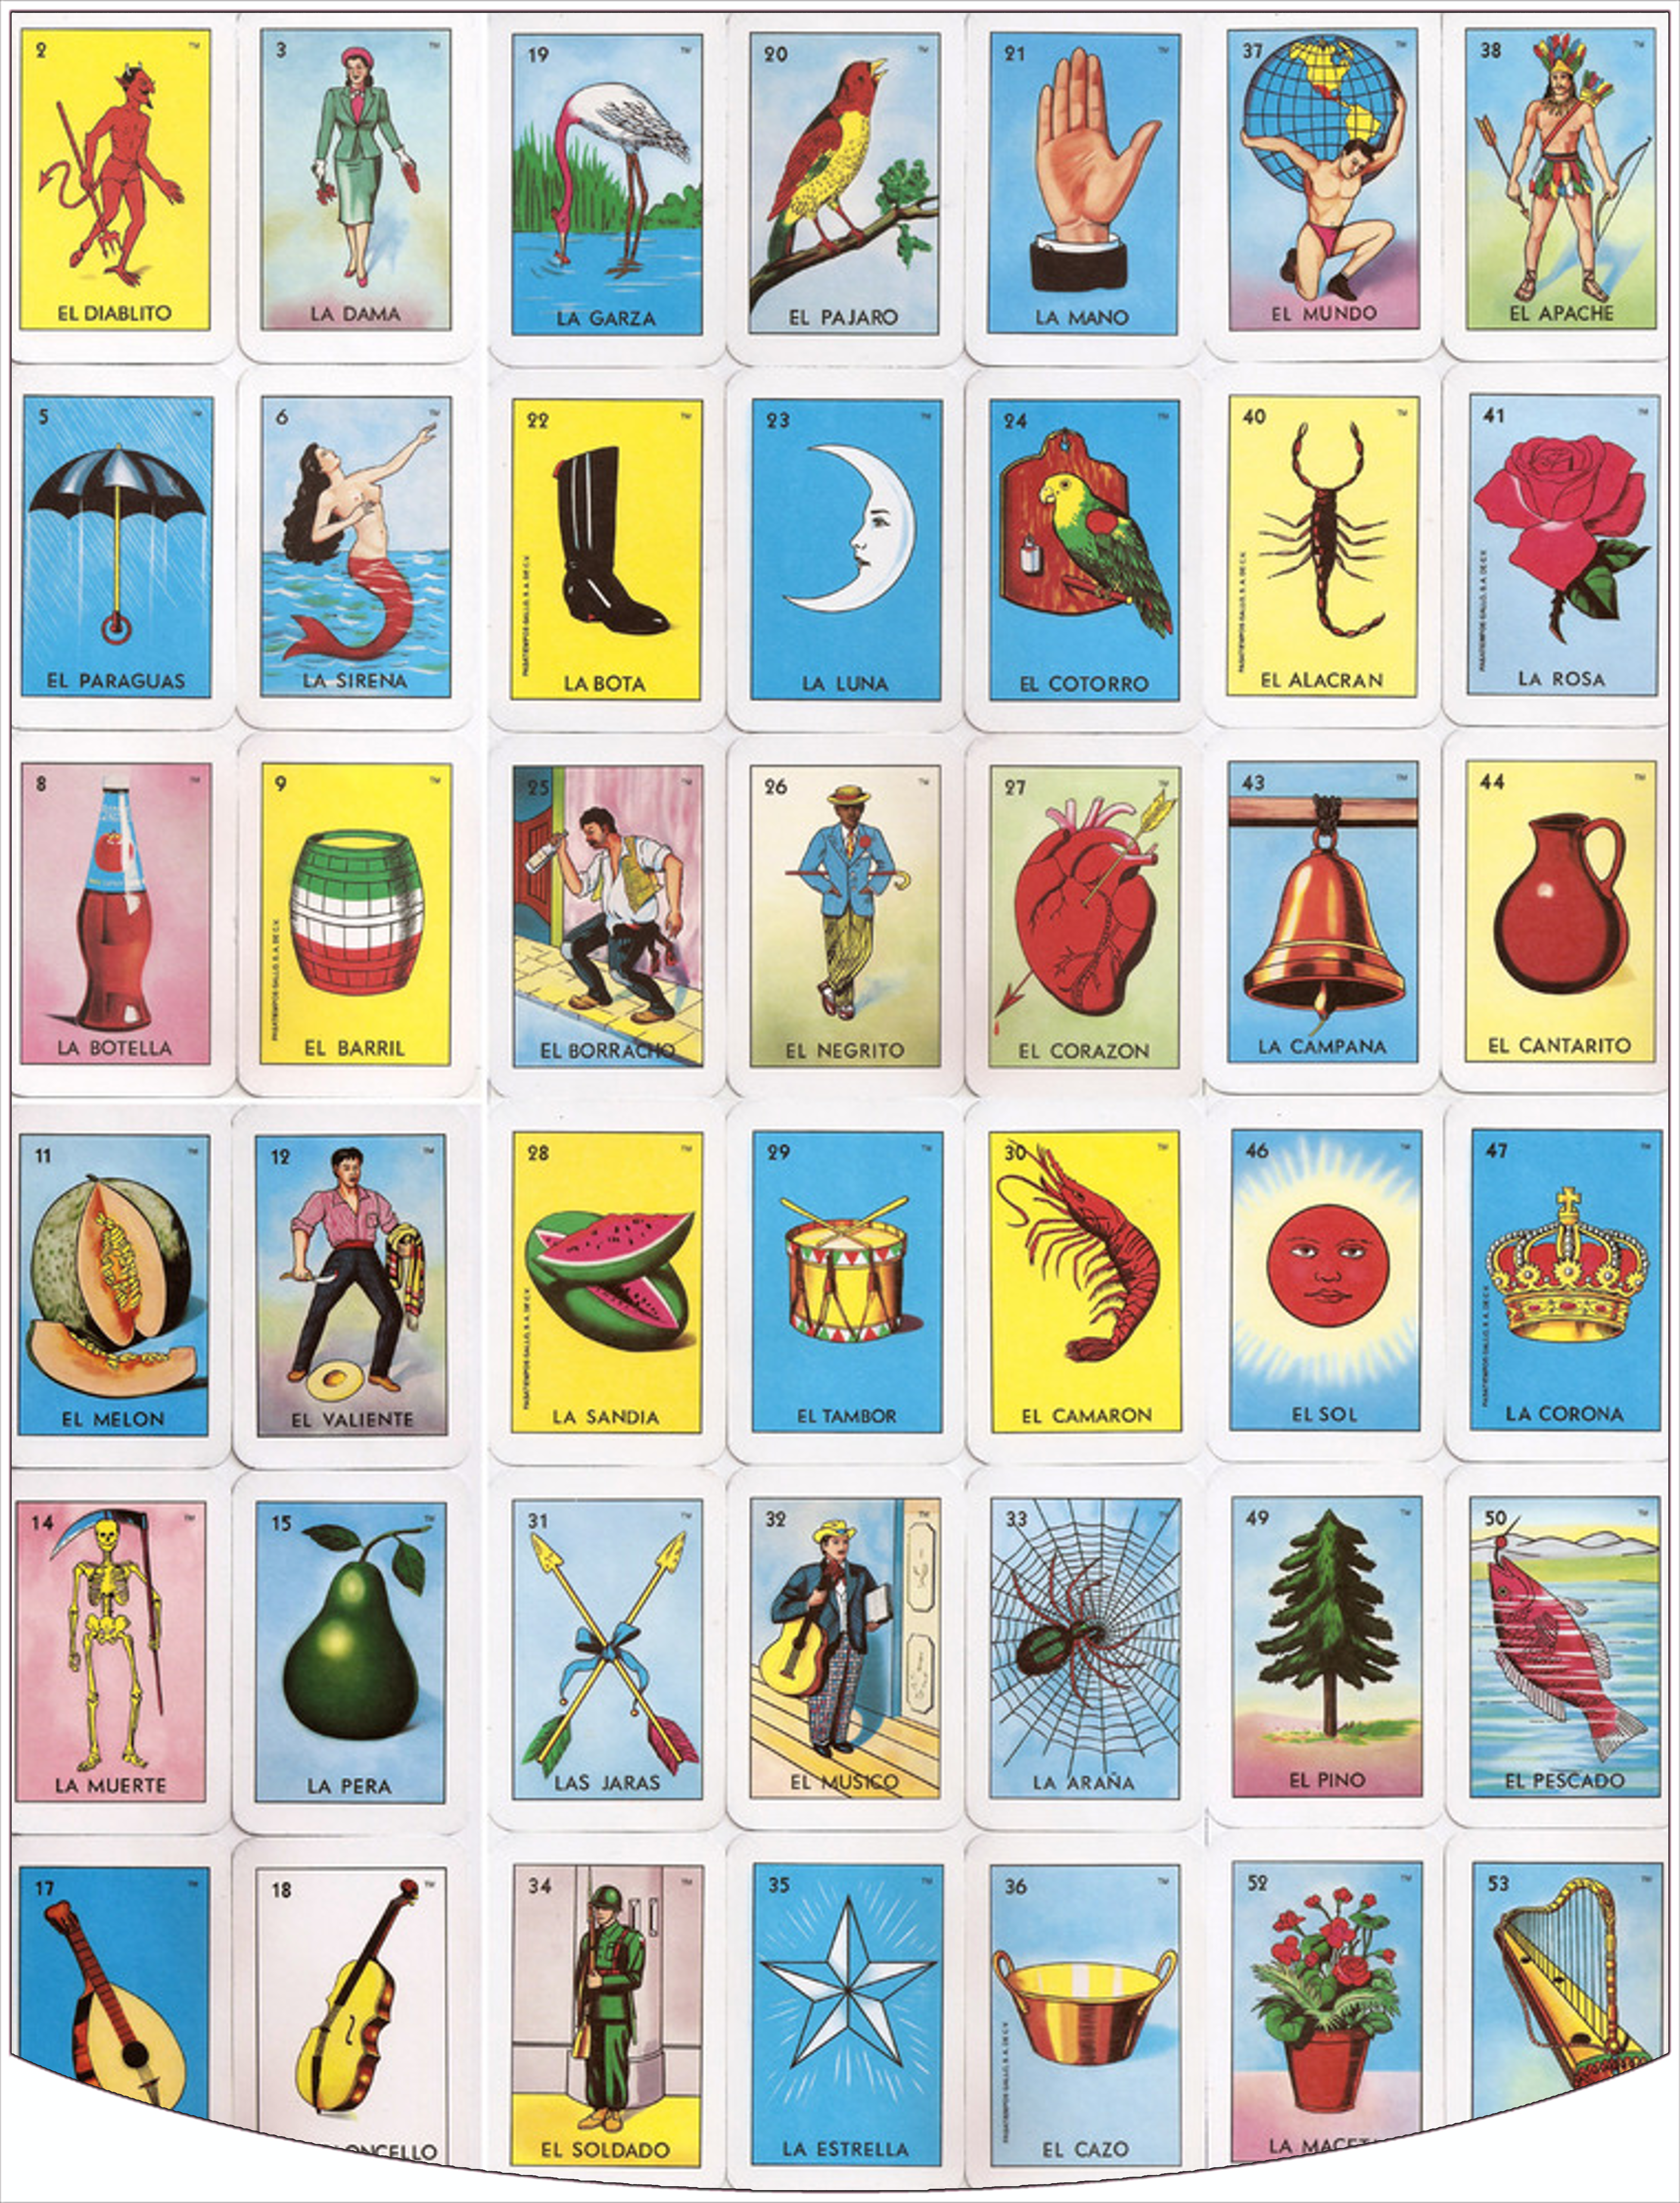 La Loteria Backpack.